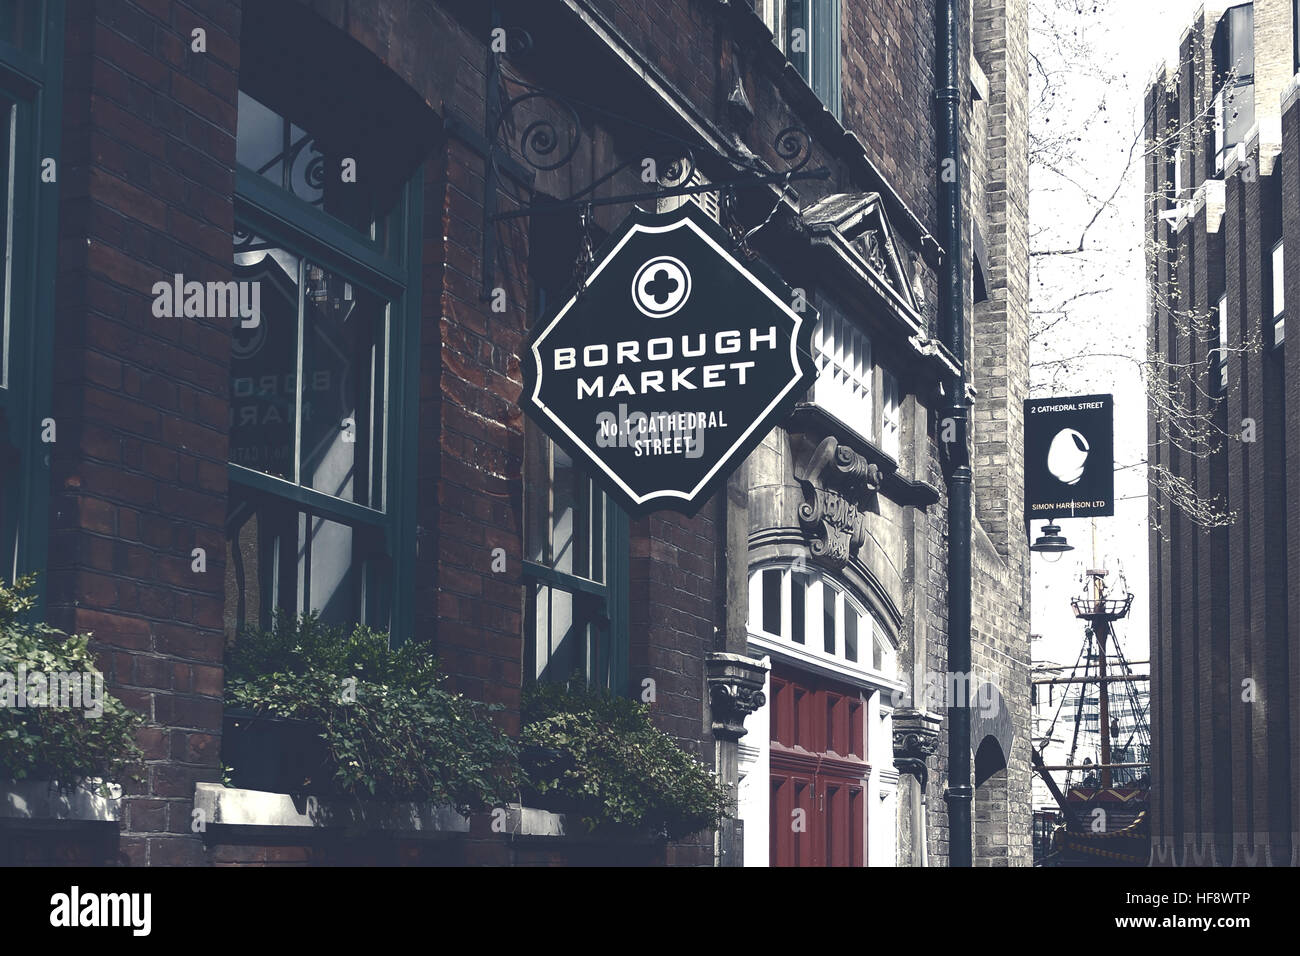 London,Uk - April 15, 2016: Borough Market sign. It is one of the largest and oldest food markets in London. - Stock Image